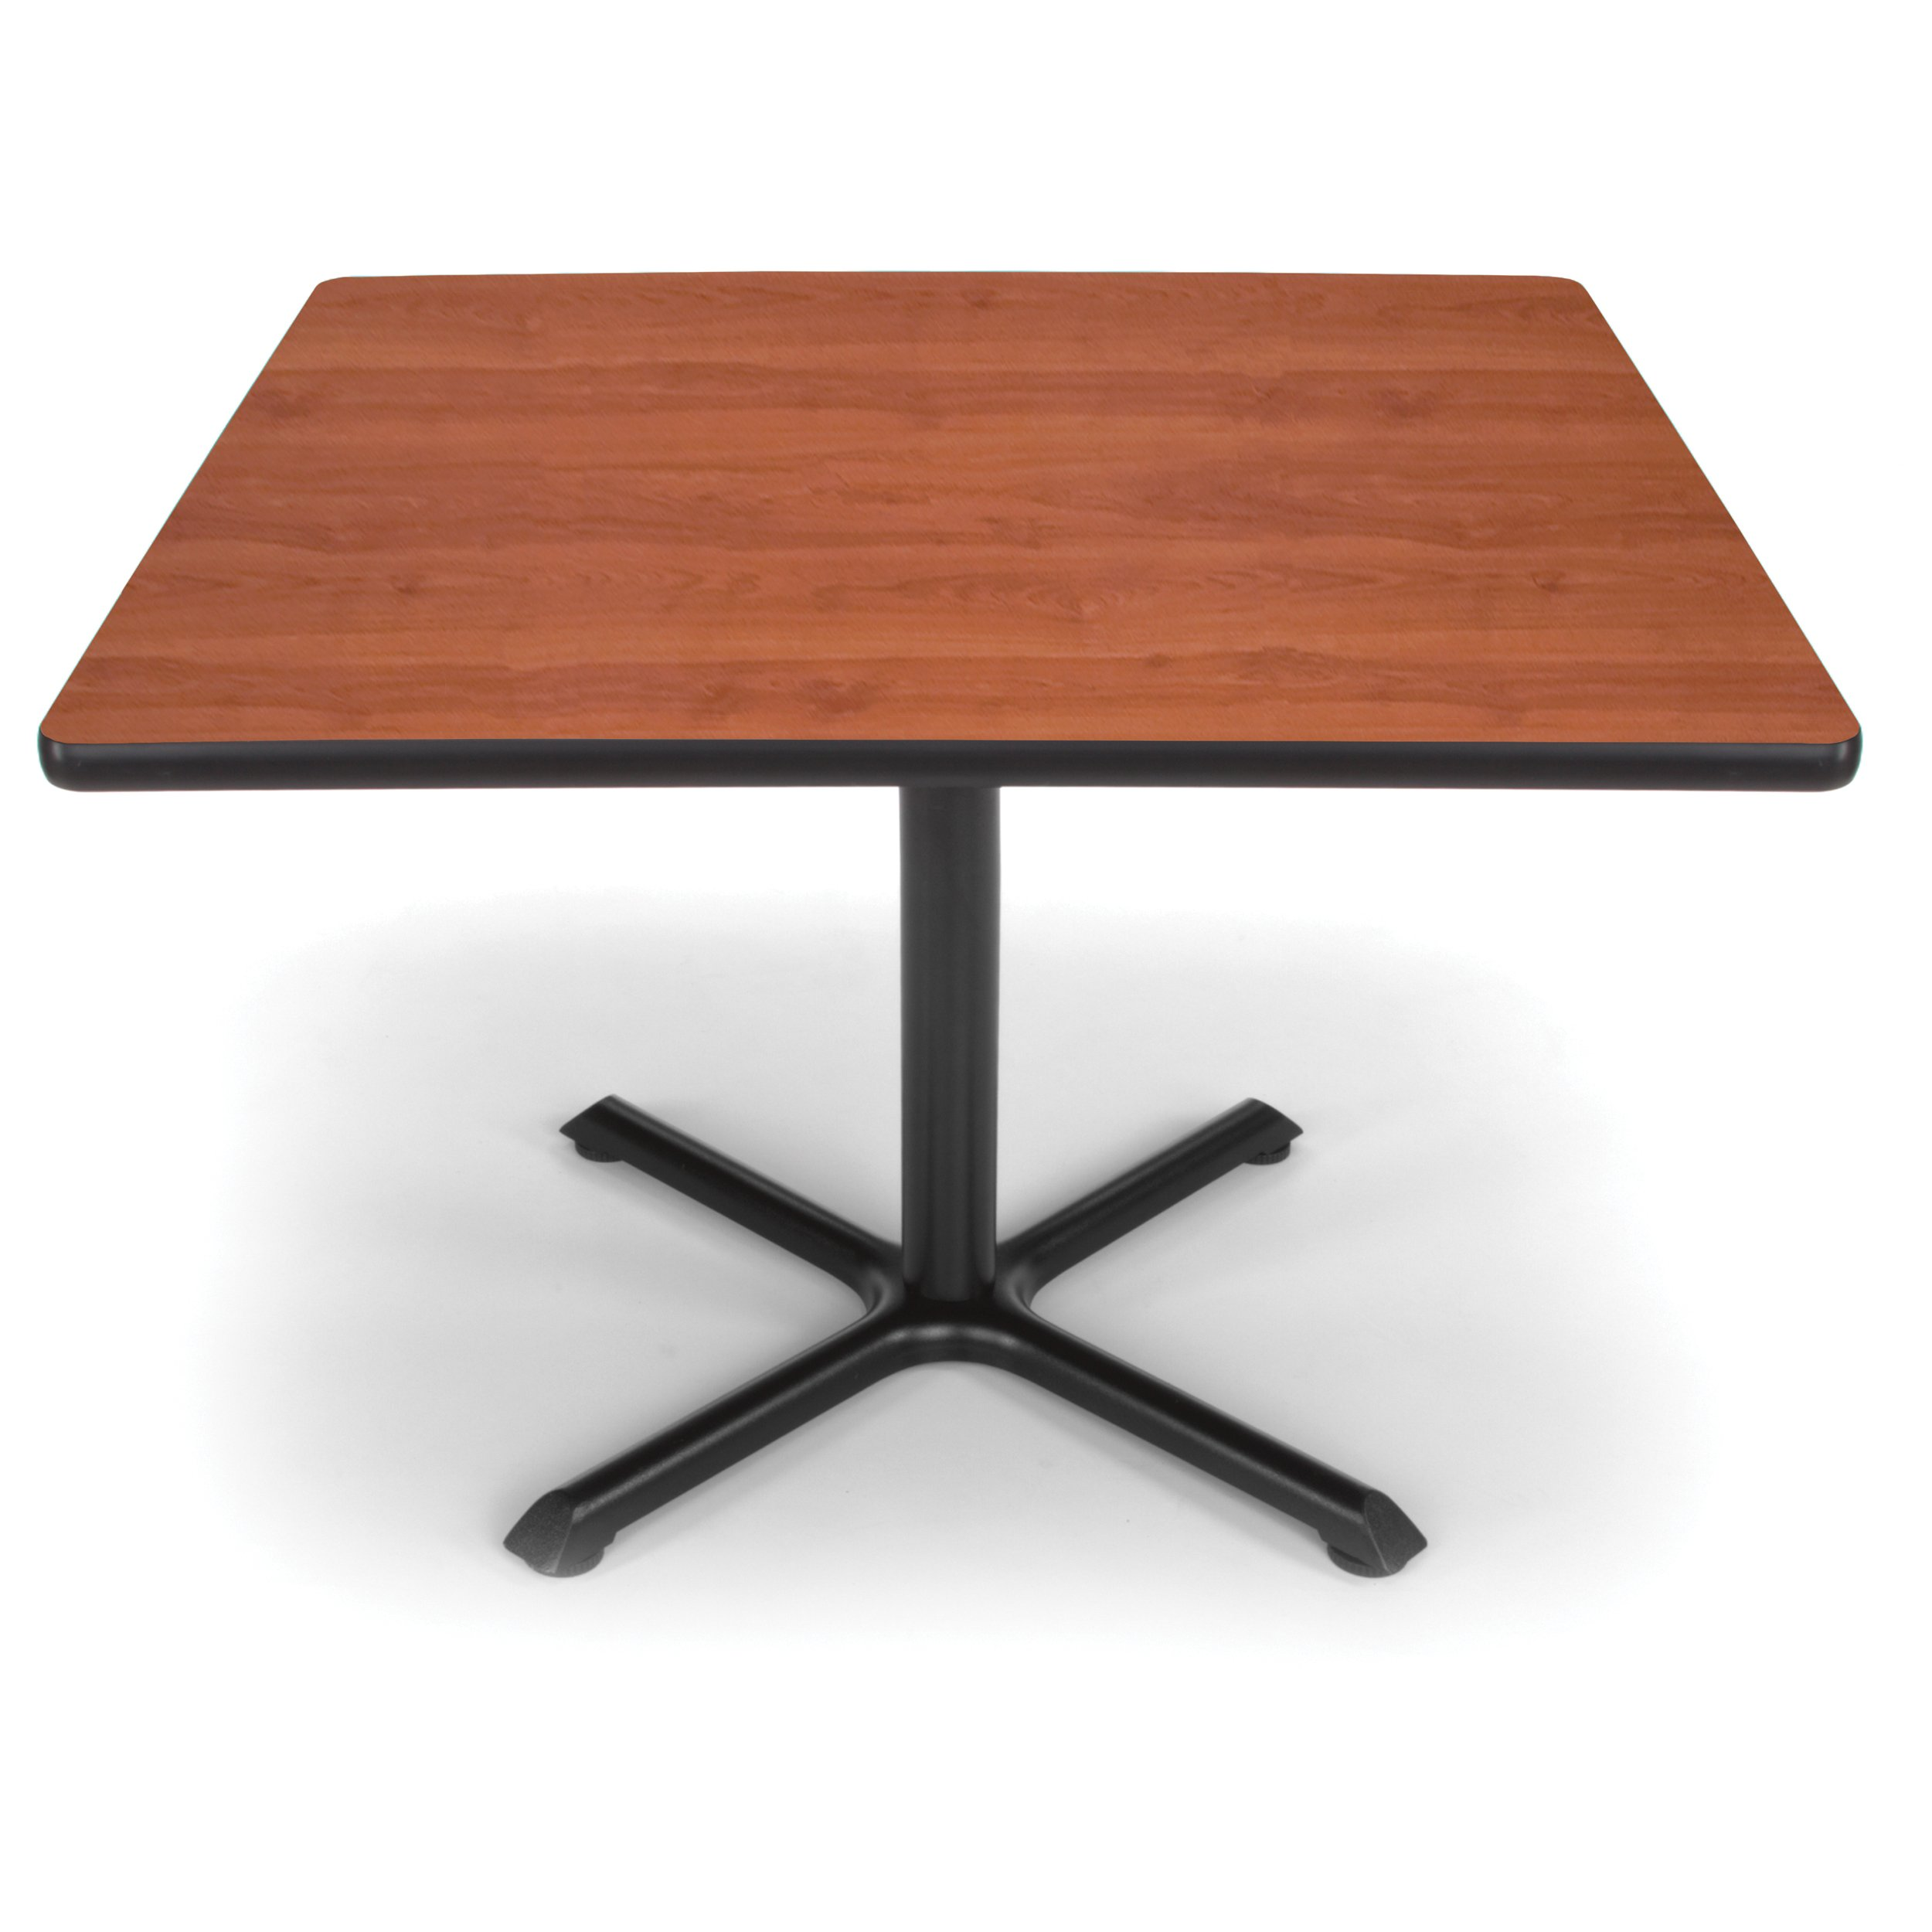 OFM Square Multi-Purpose Table, 42'', Cherry by OFM